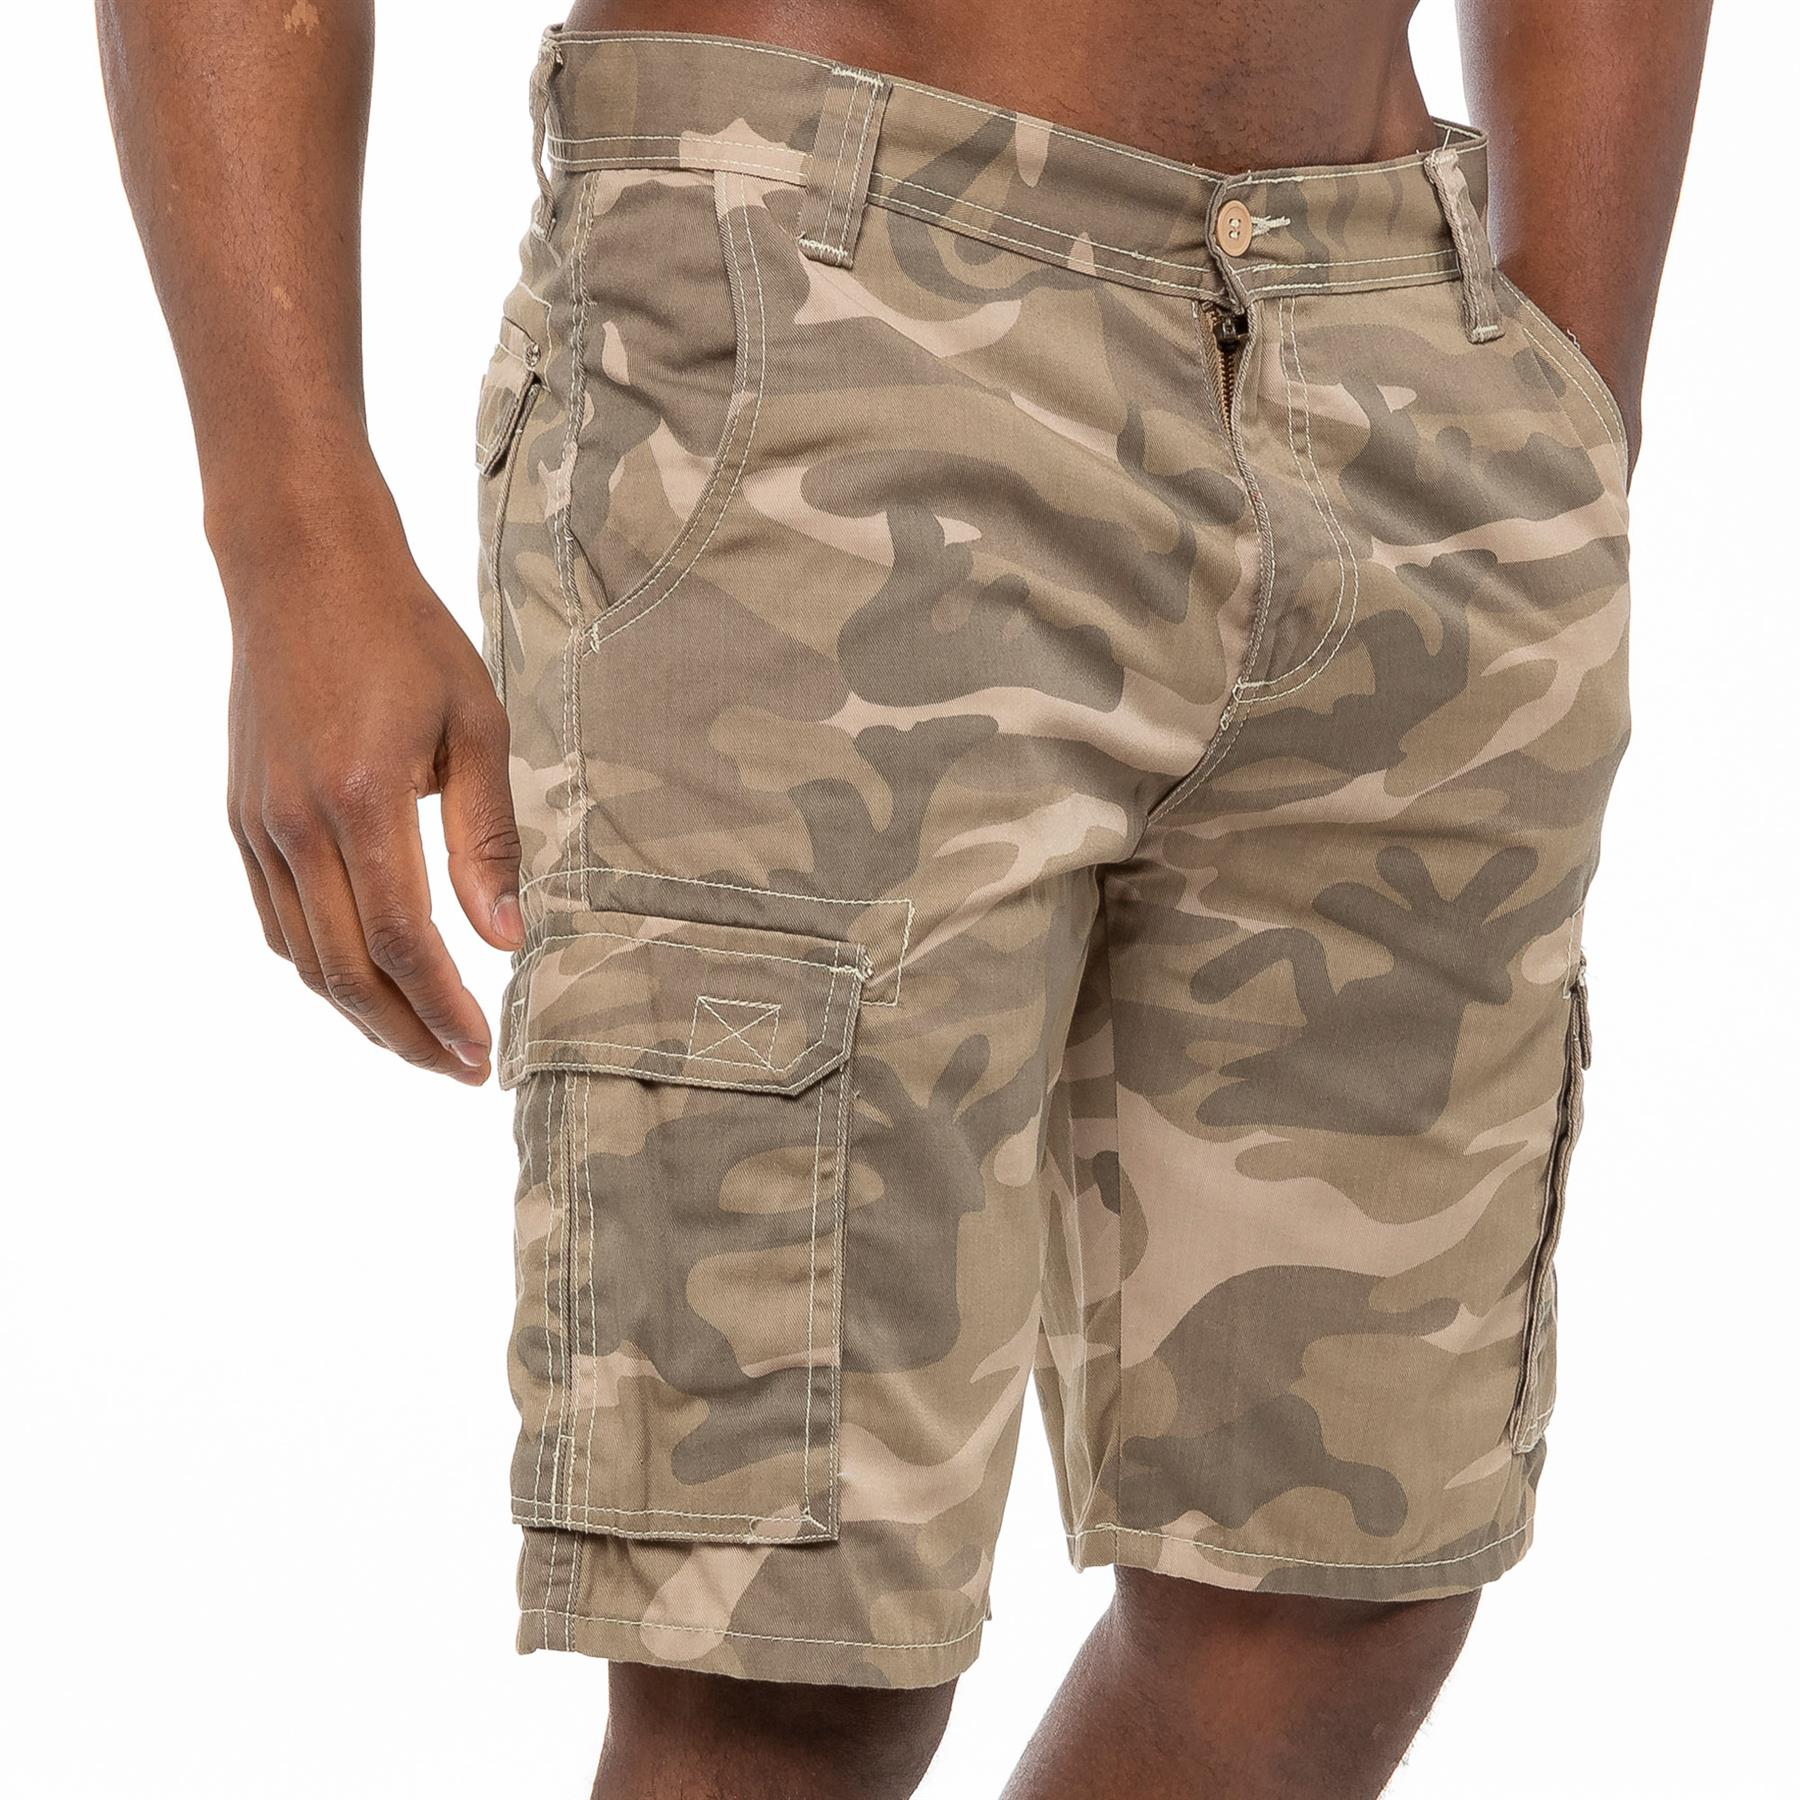 thumbnail 4 - Kruze Jeans Mens Army Combat Shorts Camouflage Cargo Casual Camo Work Half Pants